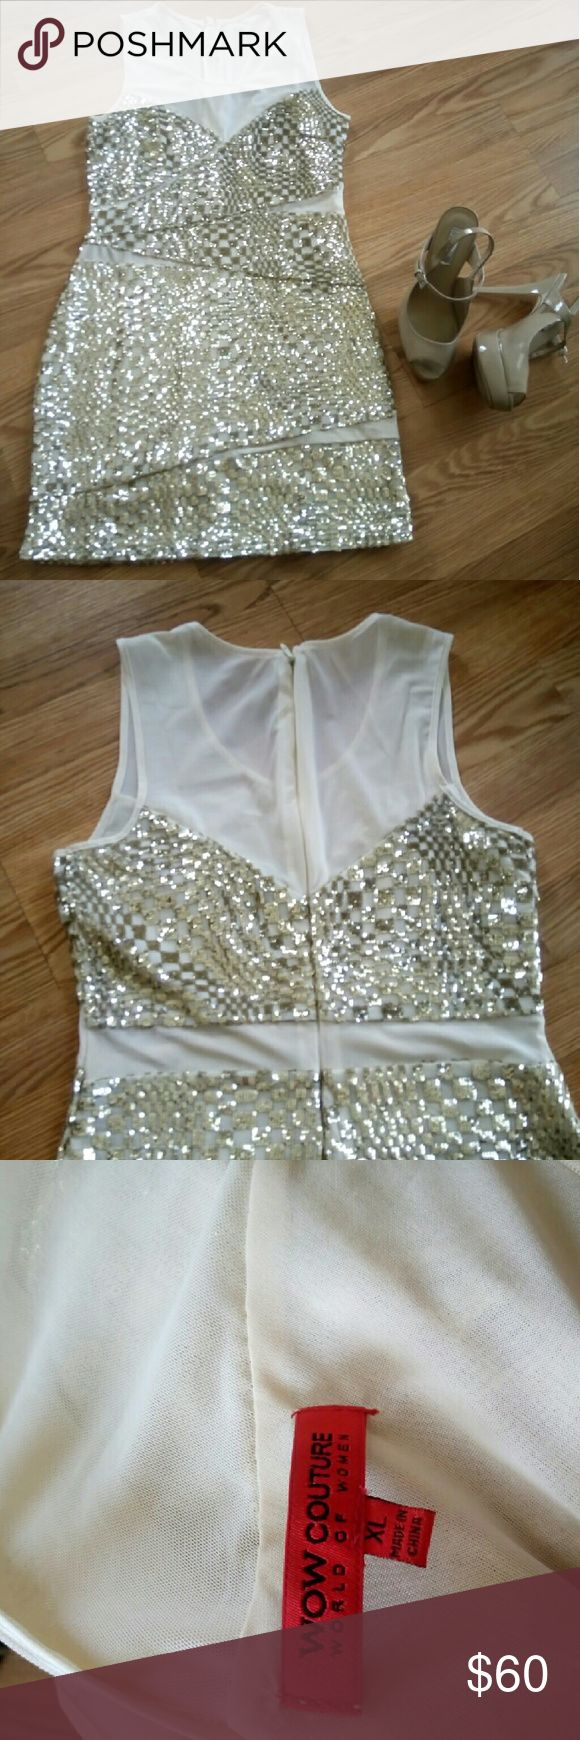 Wow couture gold and cream sequins dress Worn only once, great condition, all the sequins are in tact. Size XL WOW couture Dresses Mini